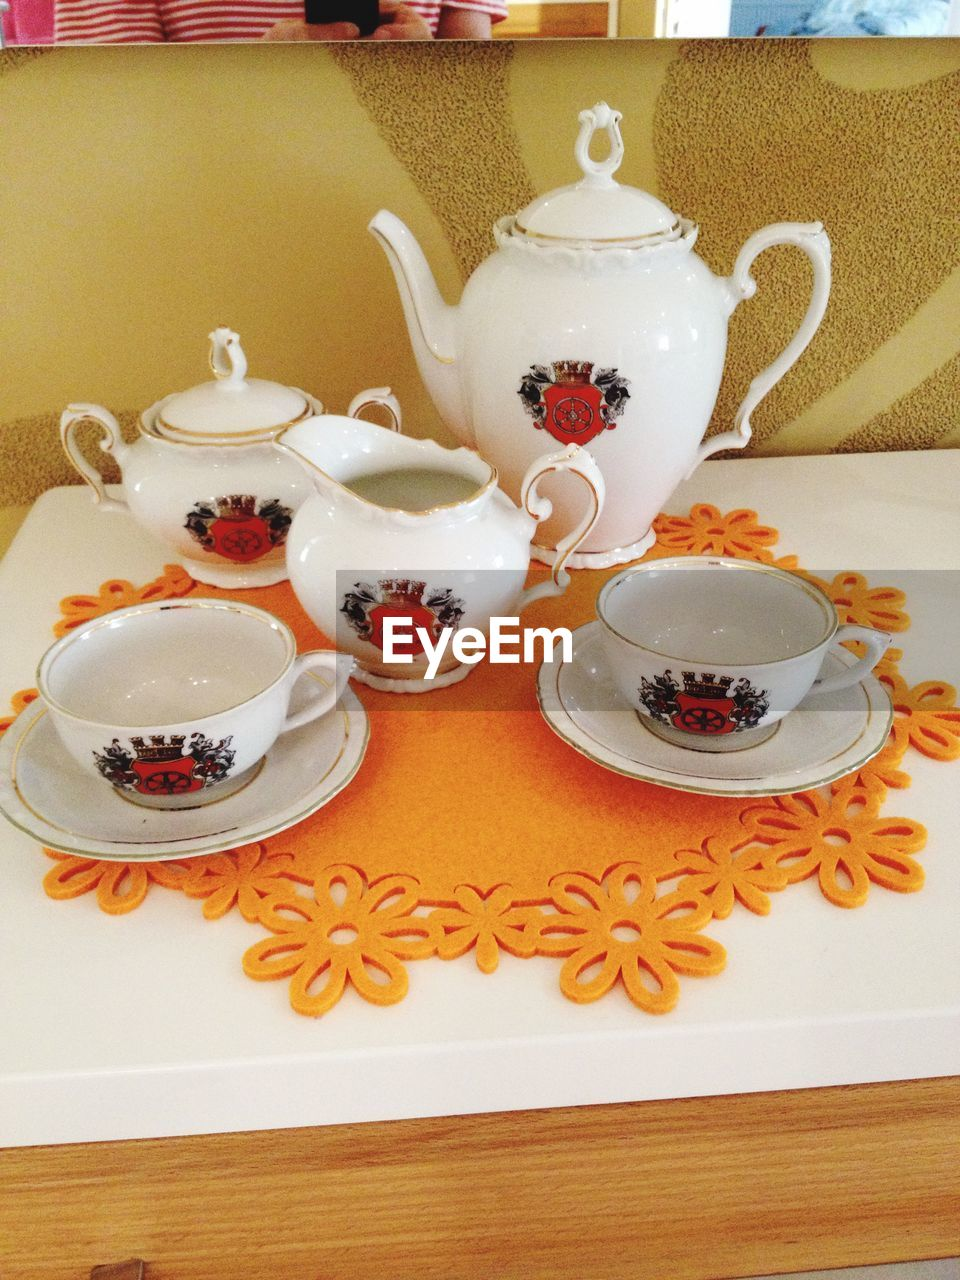 teapot, refreshment, tea cup, food and drink, tea - hot drink, table, plate, drink, indoors, no people, saucer, food, freshness, healthy eating, tablecloth, sweet food, dessert, ready-to-eat, close-up, day